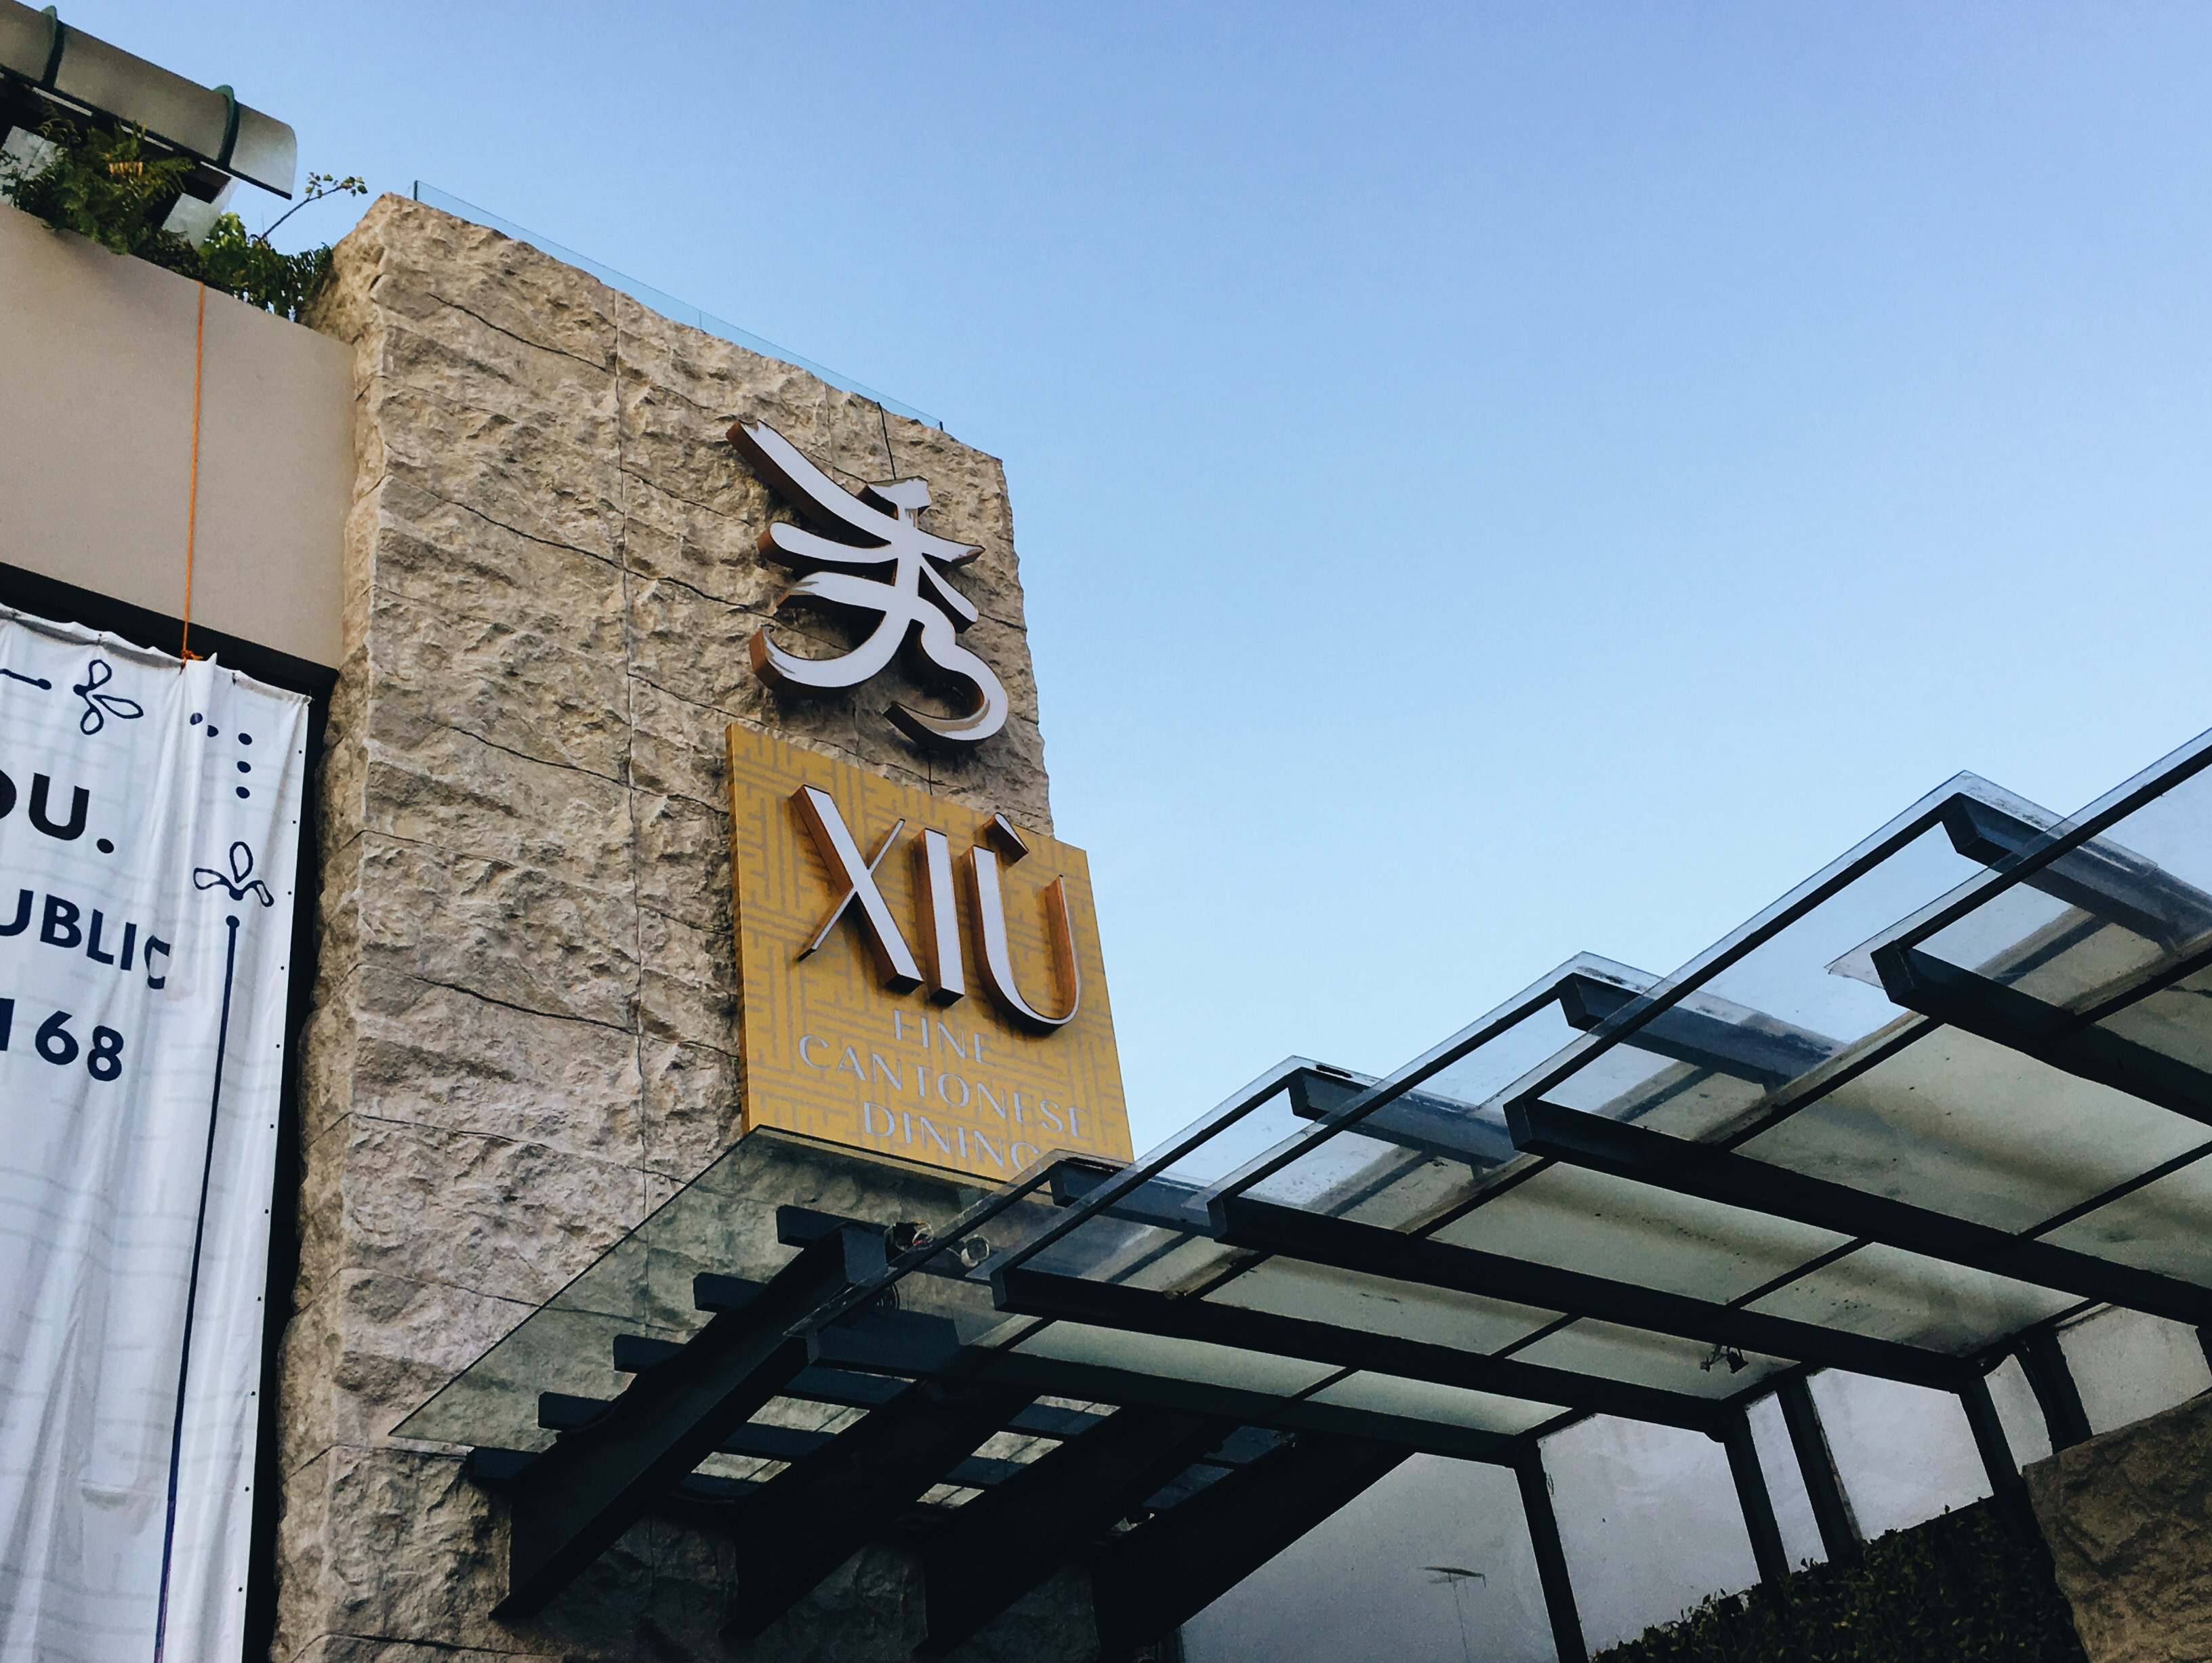 img 4456 - An evening of elegance and excellence at Xiu Fine Cantonese Dining